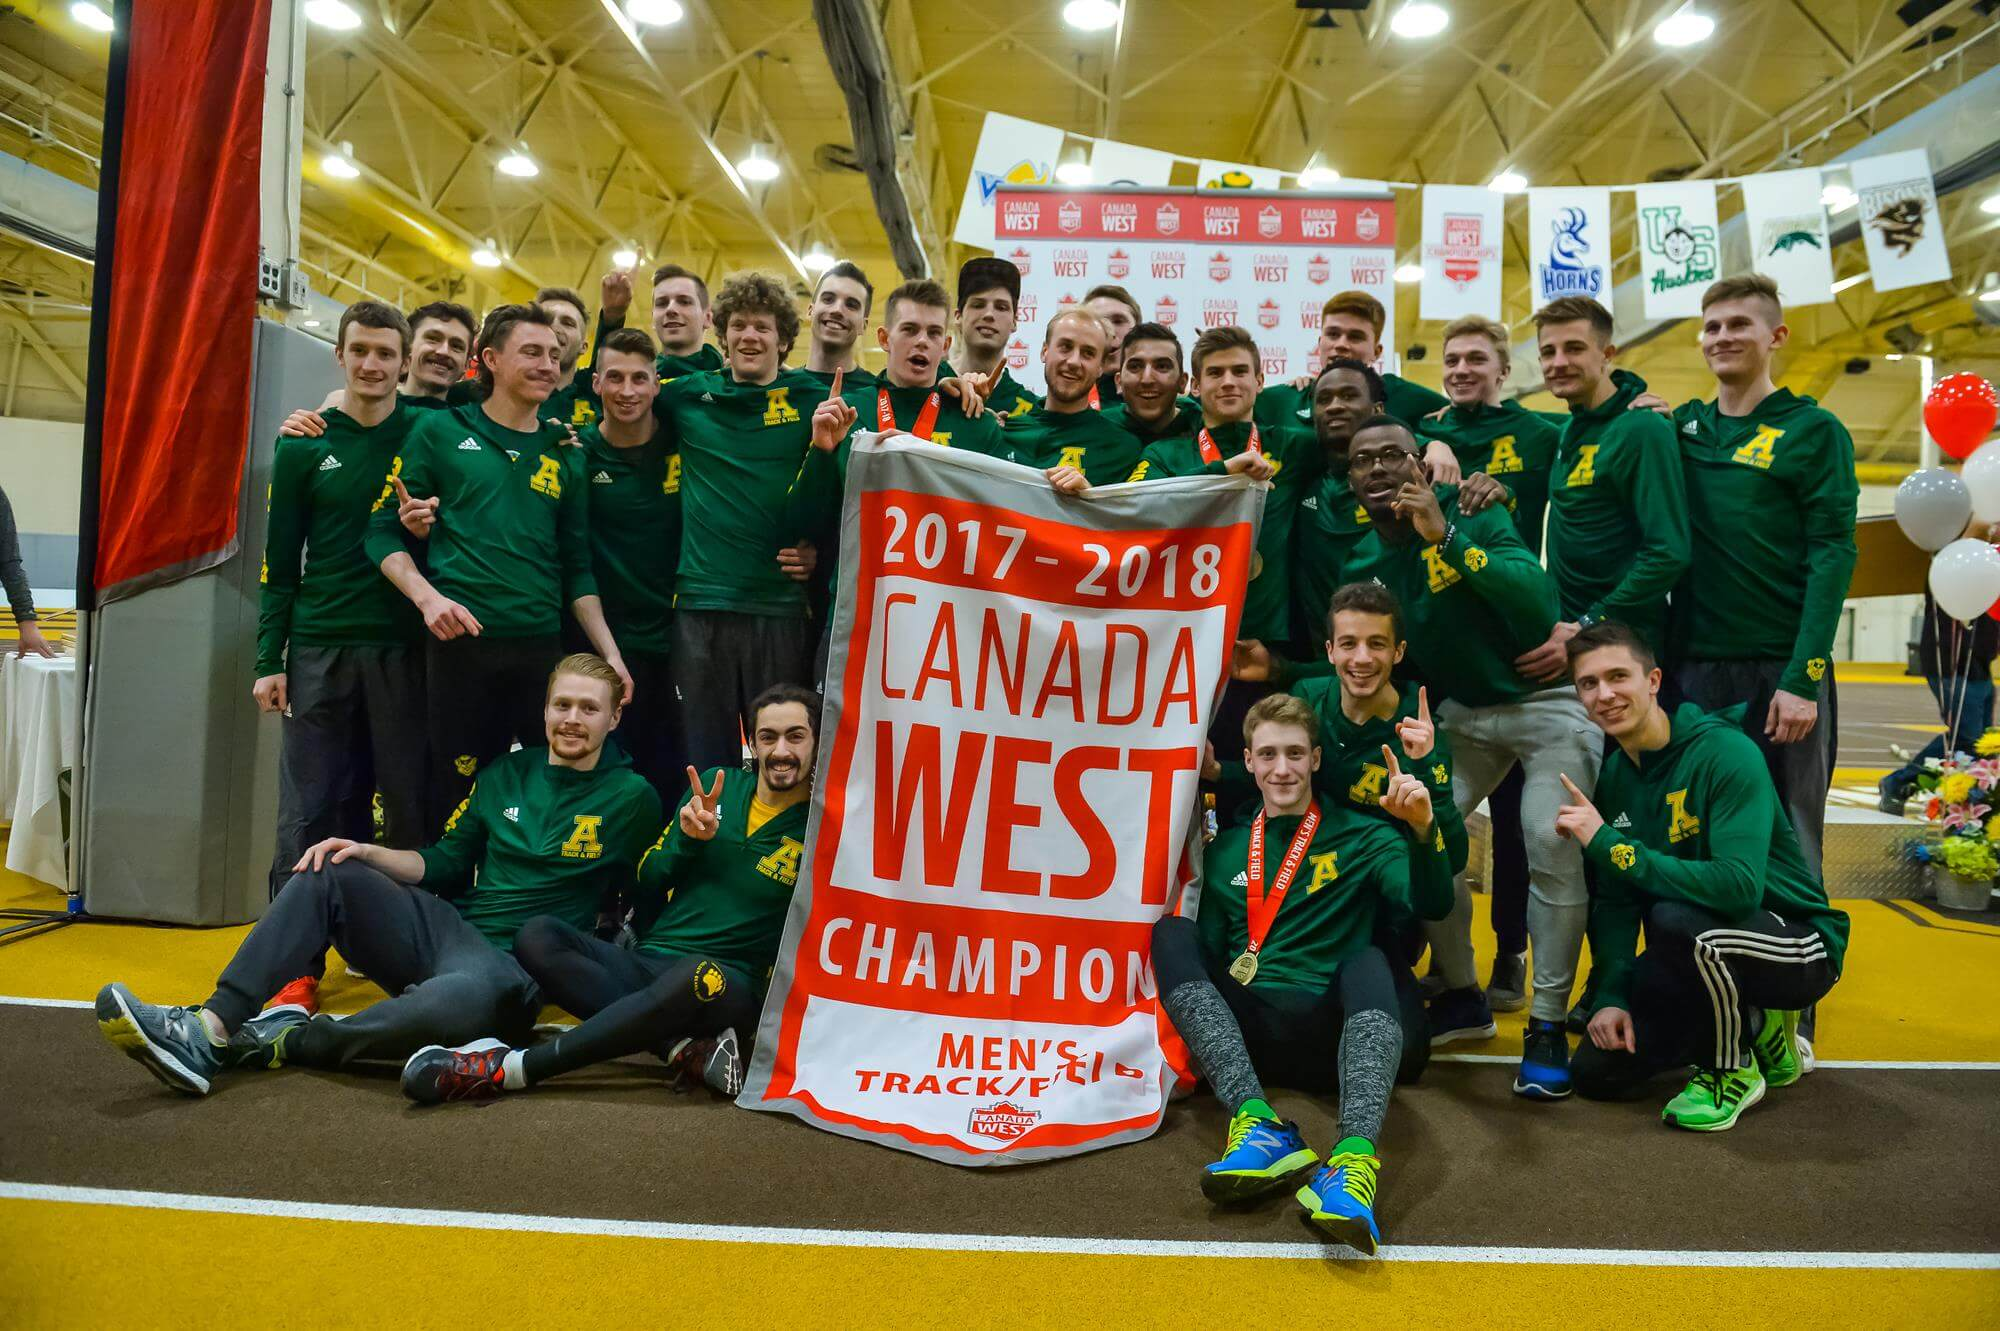 Alberta Track and Field Team